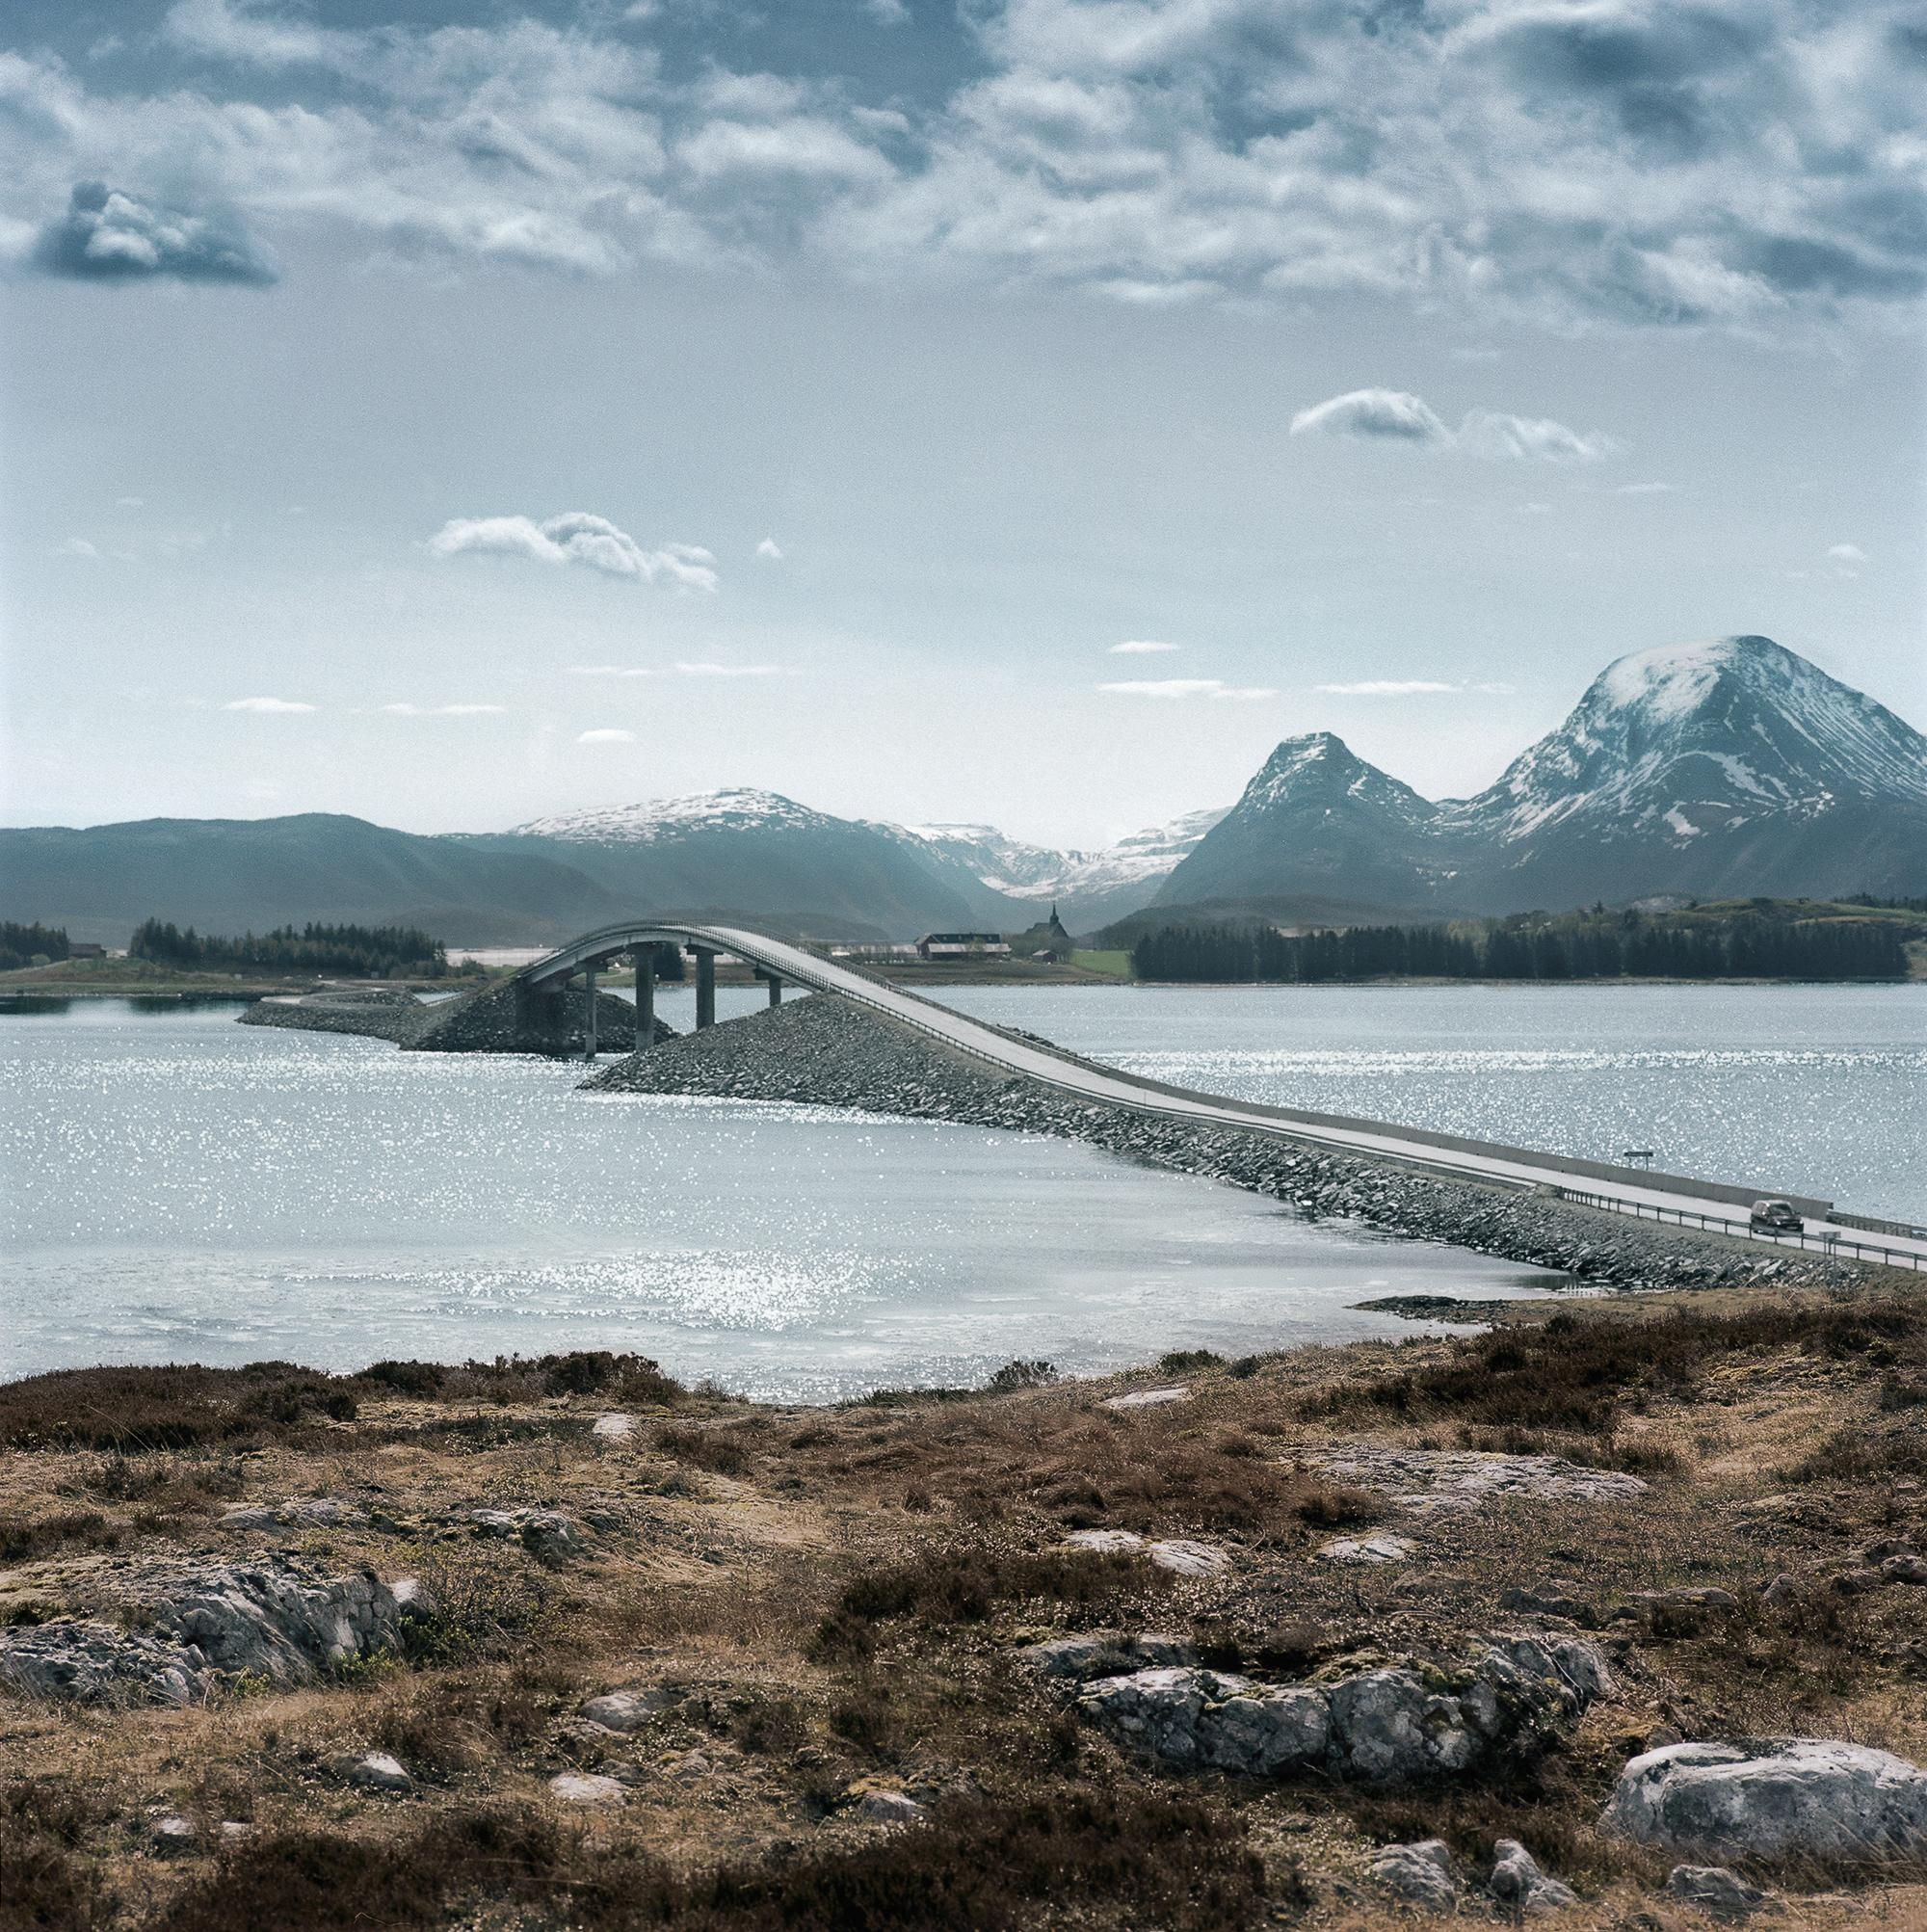 The North Atlantic Road